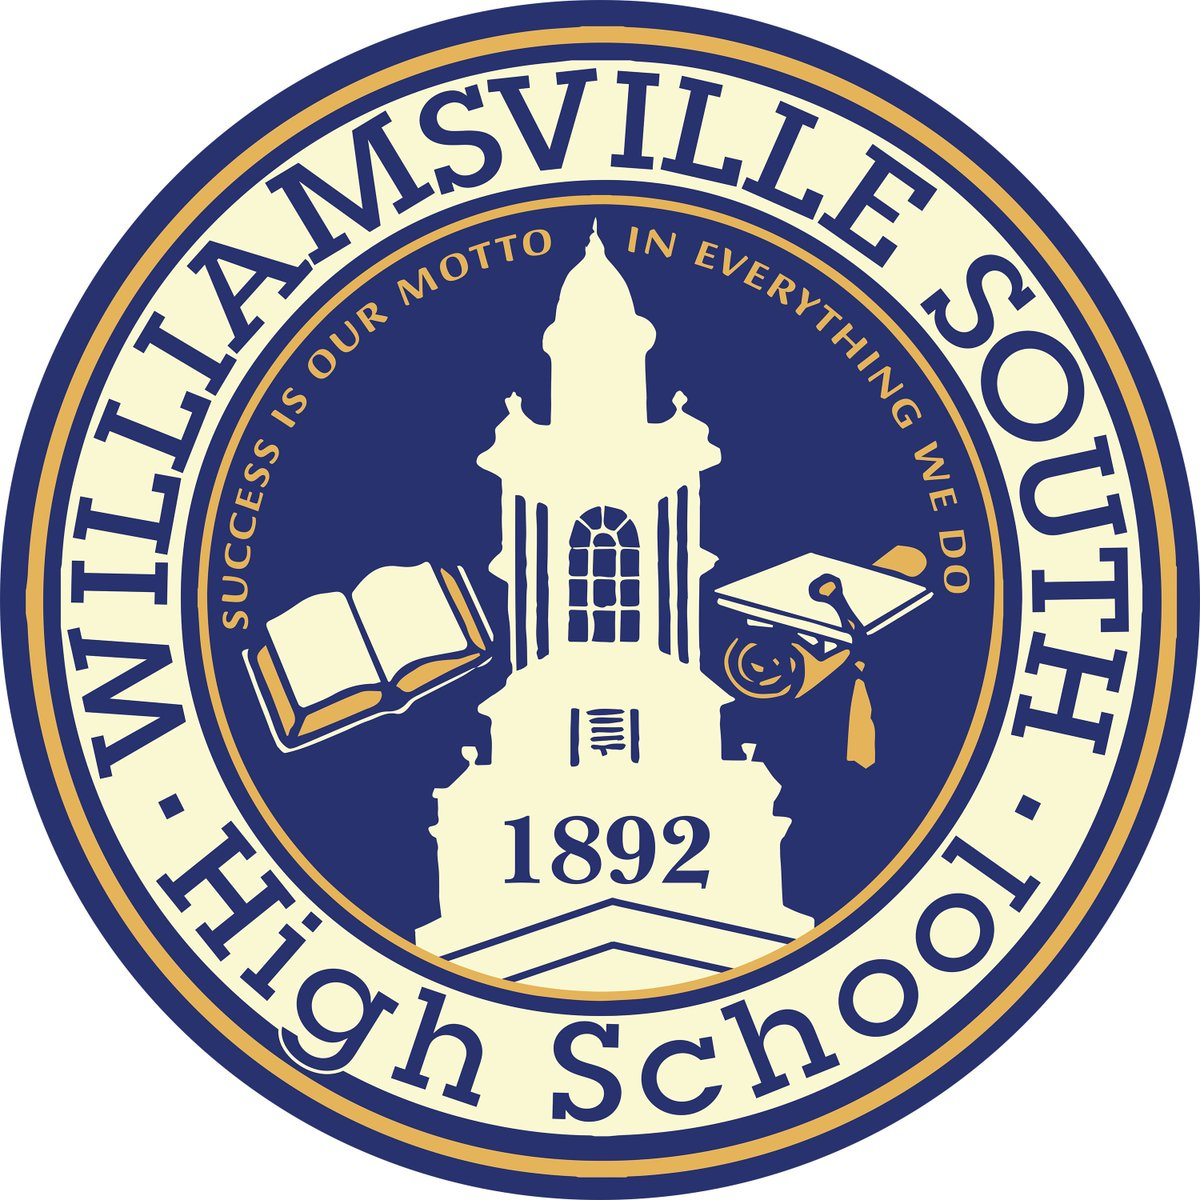 """Williamsville Csd On Twitter: """"hs Graduation Weekend June 25 Intended For Wcsd School District Williamsville Ny Calendar"""